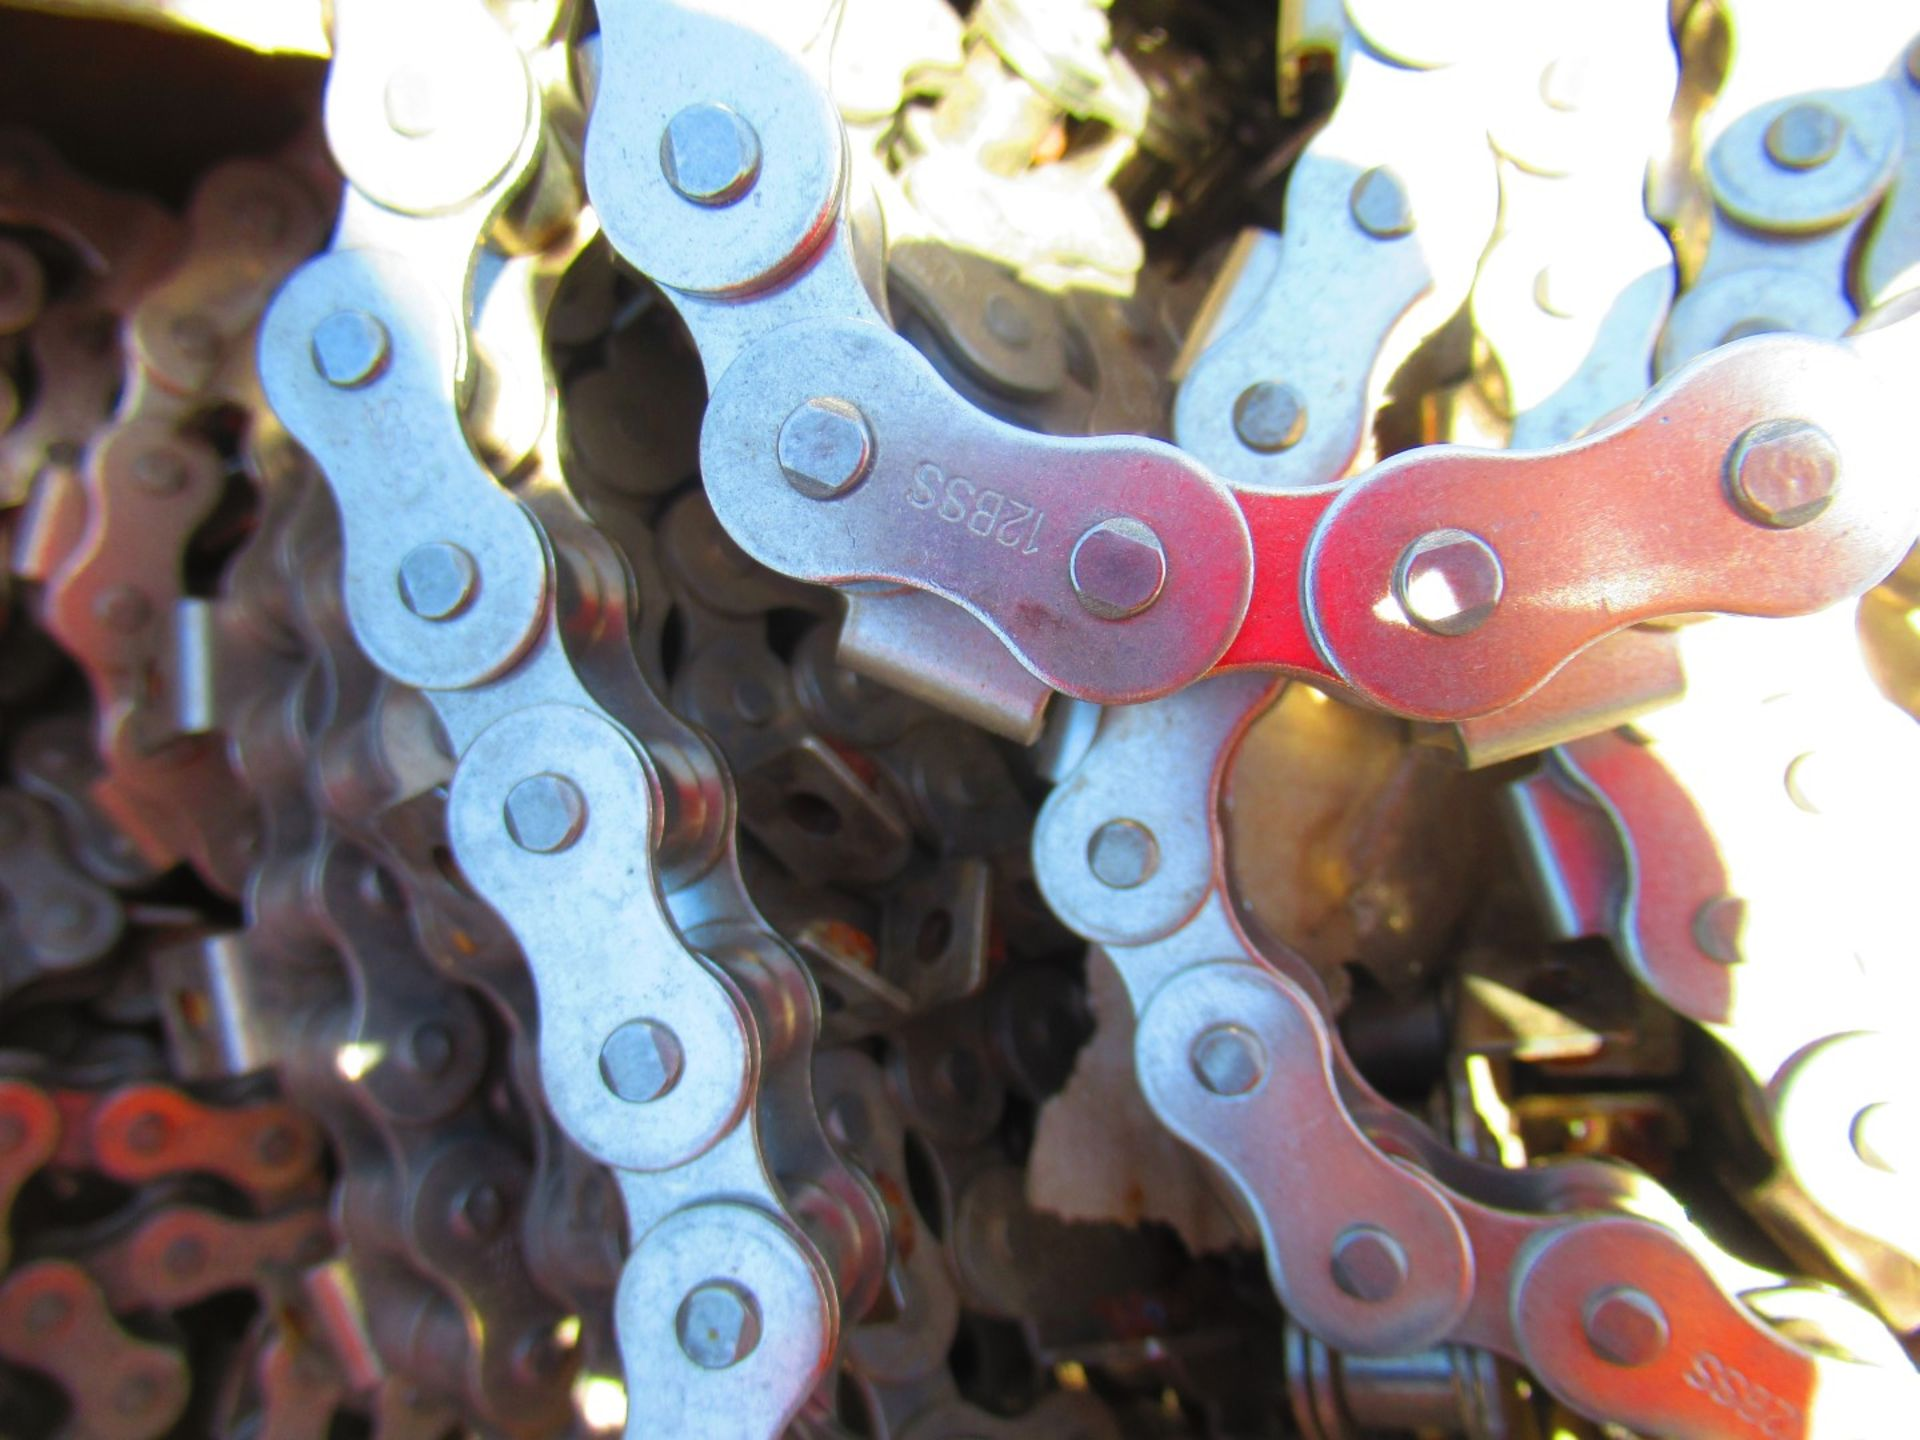 Steel Chain - Image 3 of 3